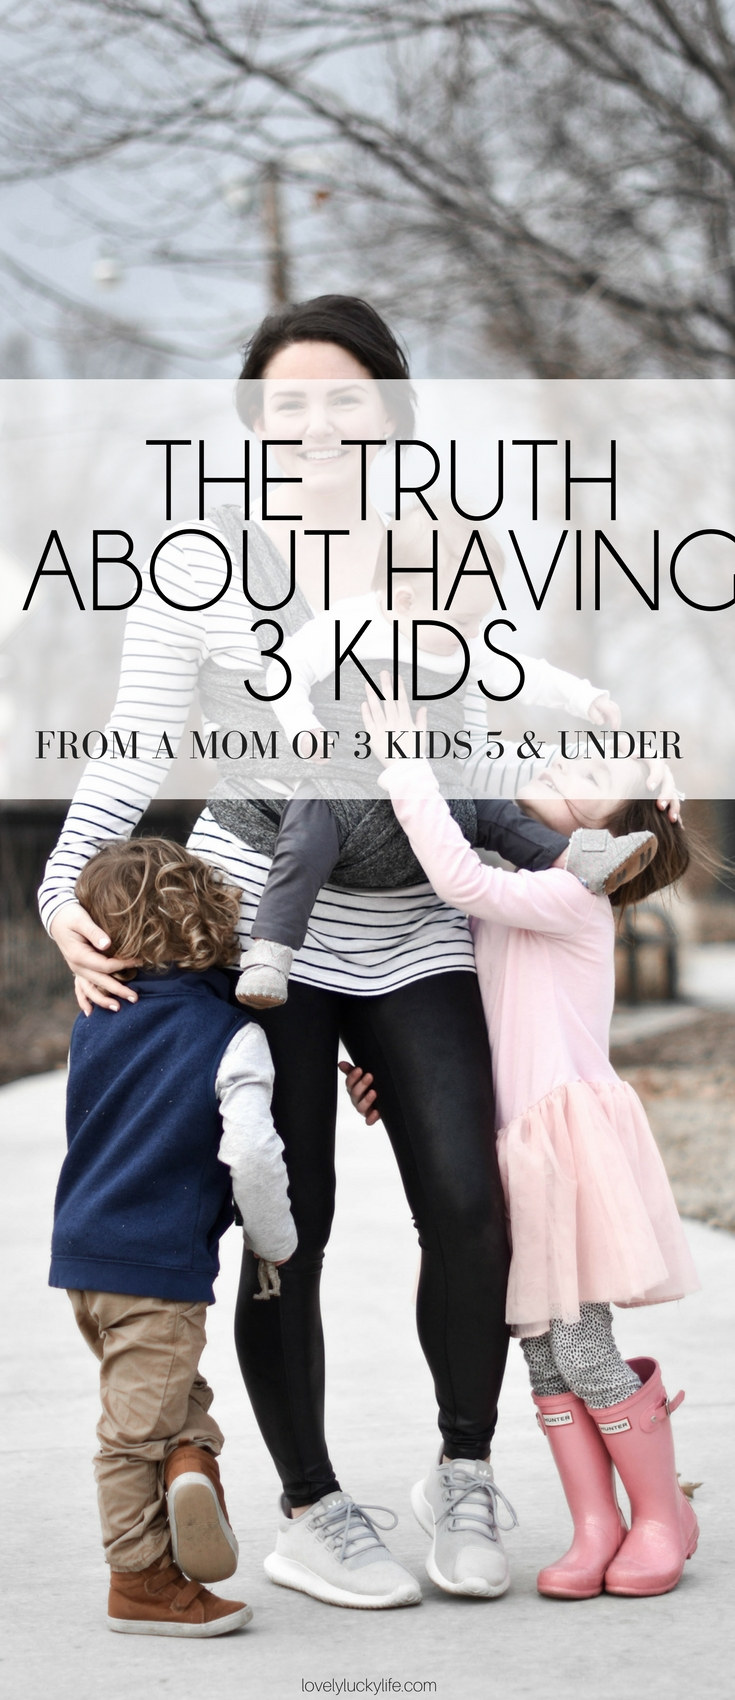 weighing the pros & cons of having a third baby? here's the truth about having three kids from a mom of 3 kids ages 5 & under #motherhood #momlife